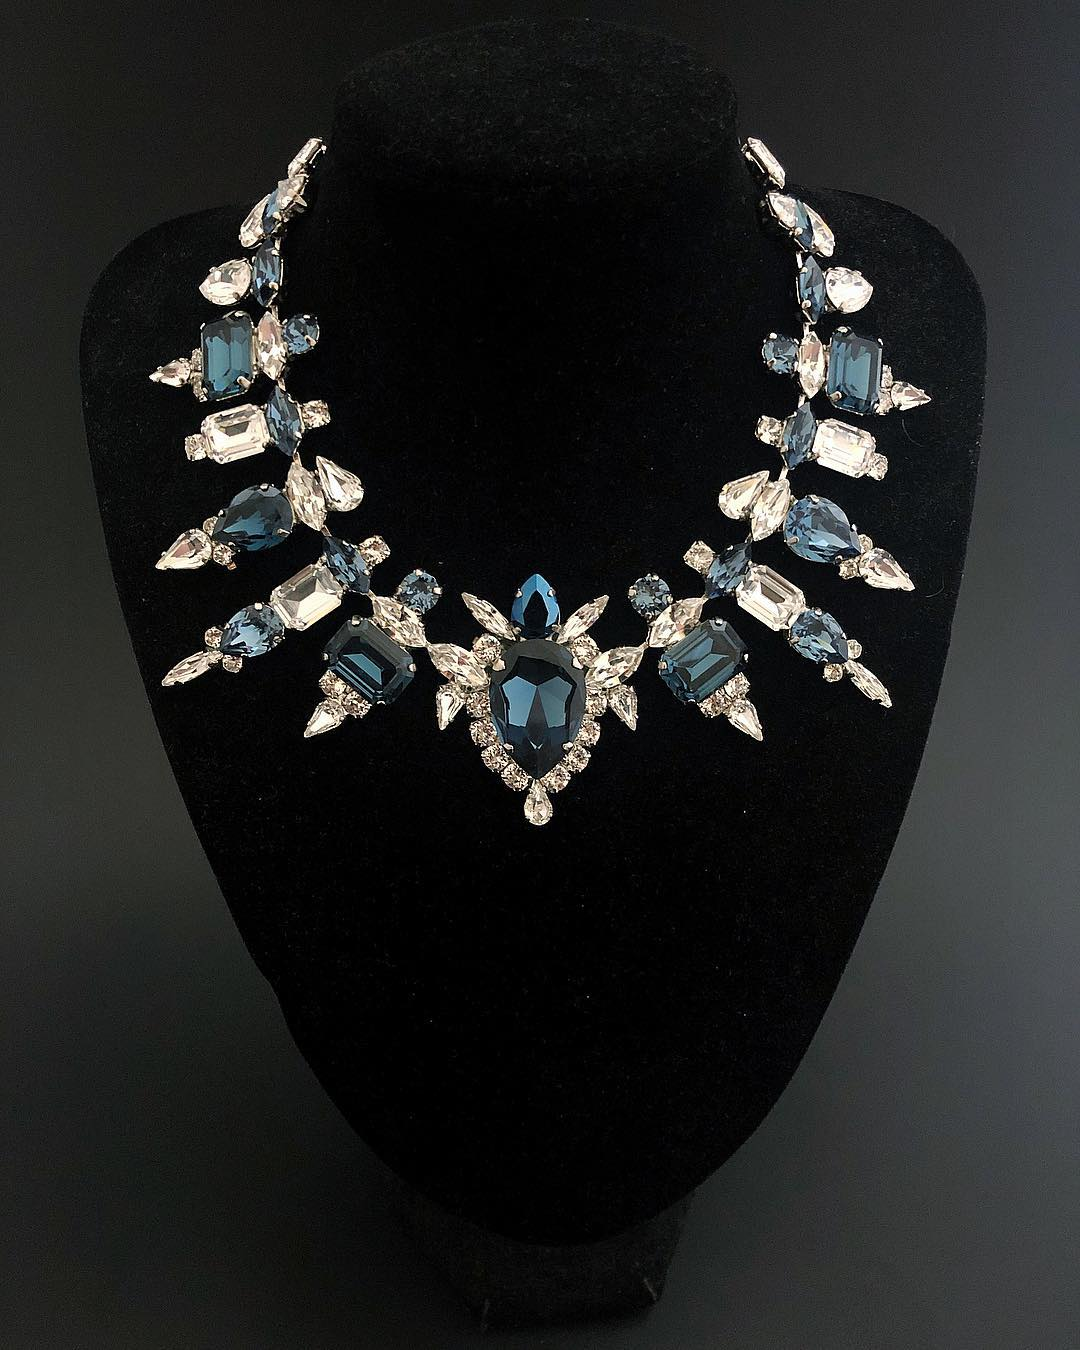 Best Jewelry Online: Sapphire and Clear Rhinestone Necklace